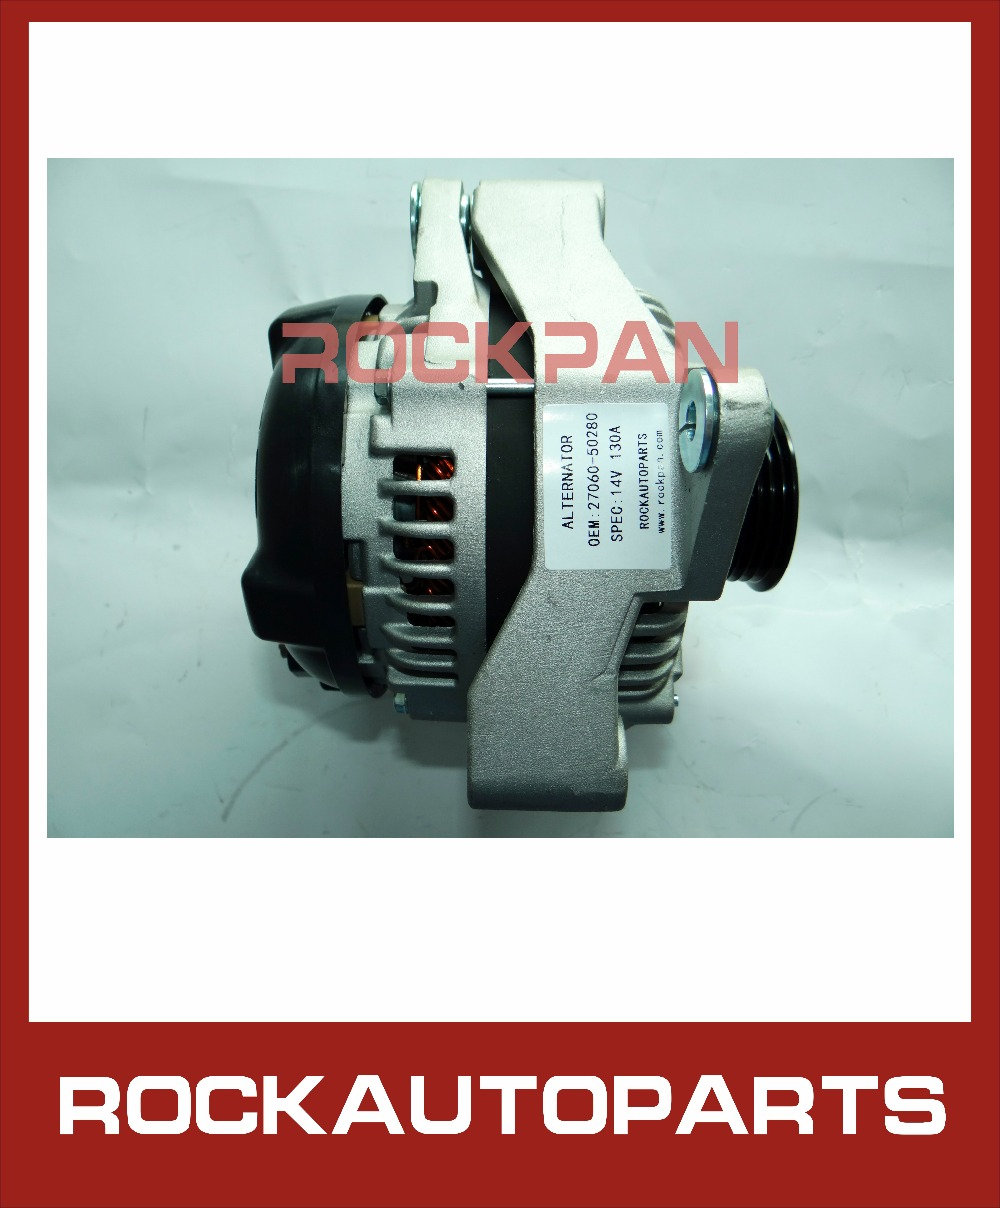 For Lexus Sc 430 Sc430 2005 2006 2007 2008 2009 2010: ROCKAUTOPARTS NEW 12V ALTERNATOR 94789 27060 50280 FOR